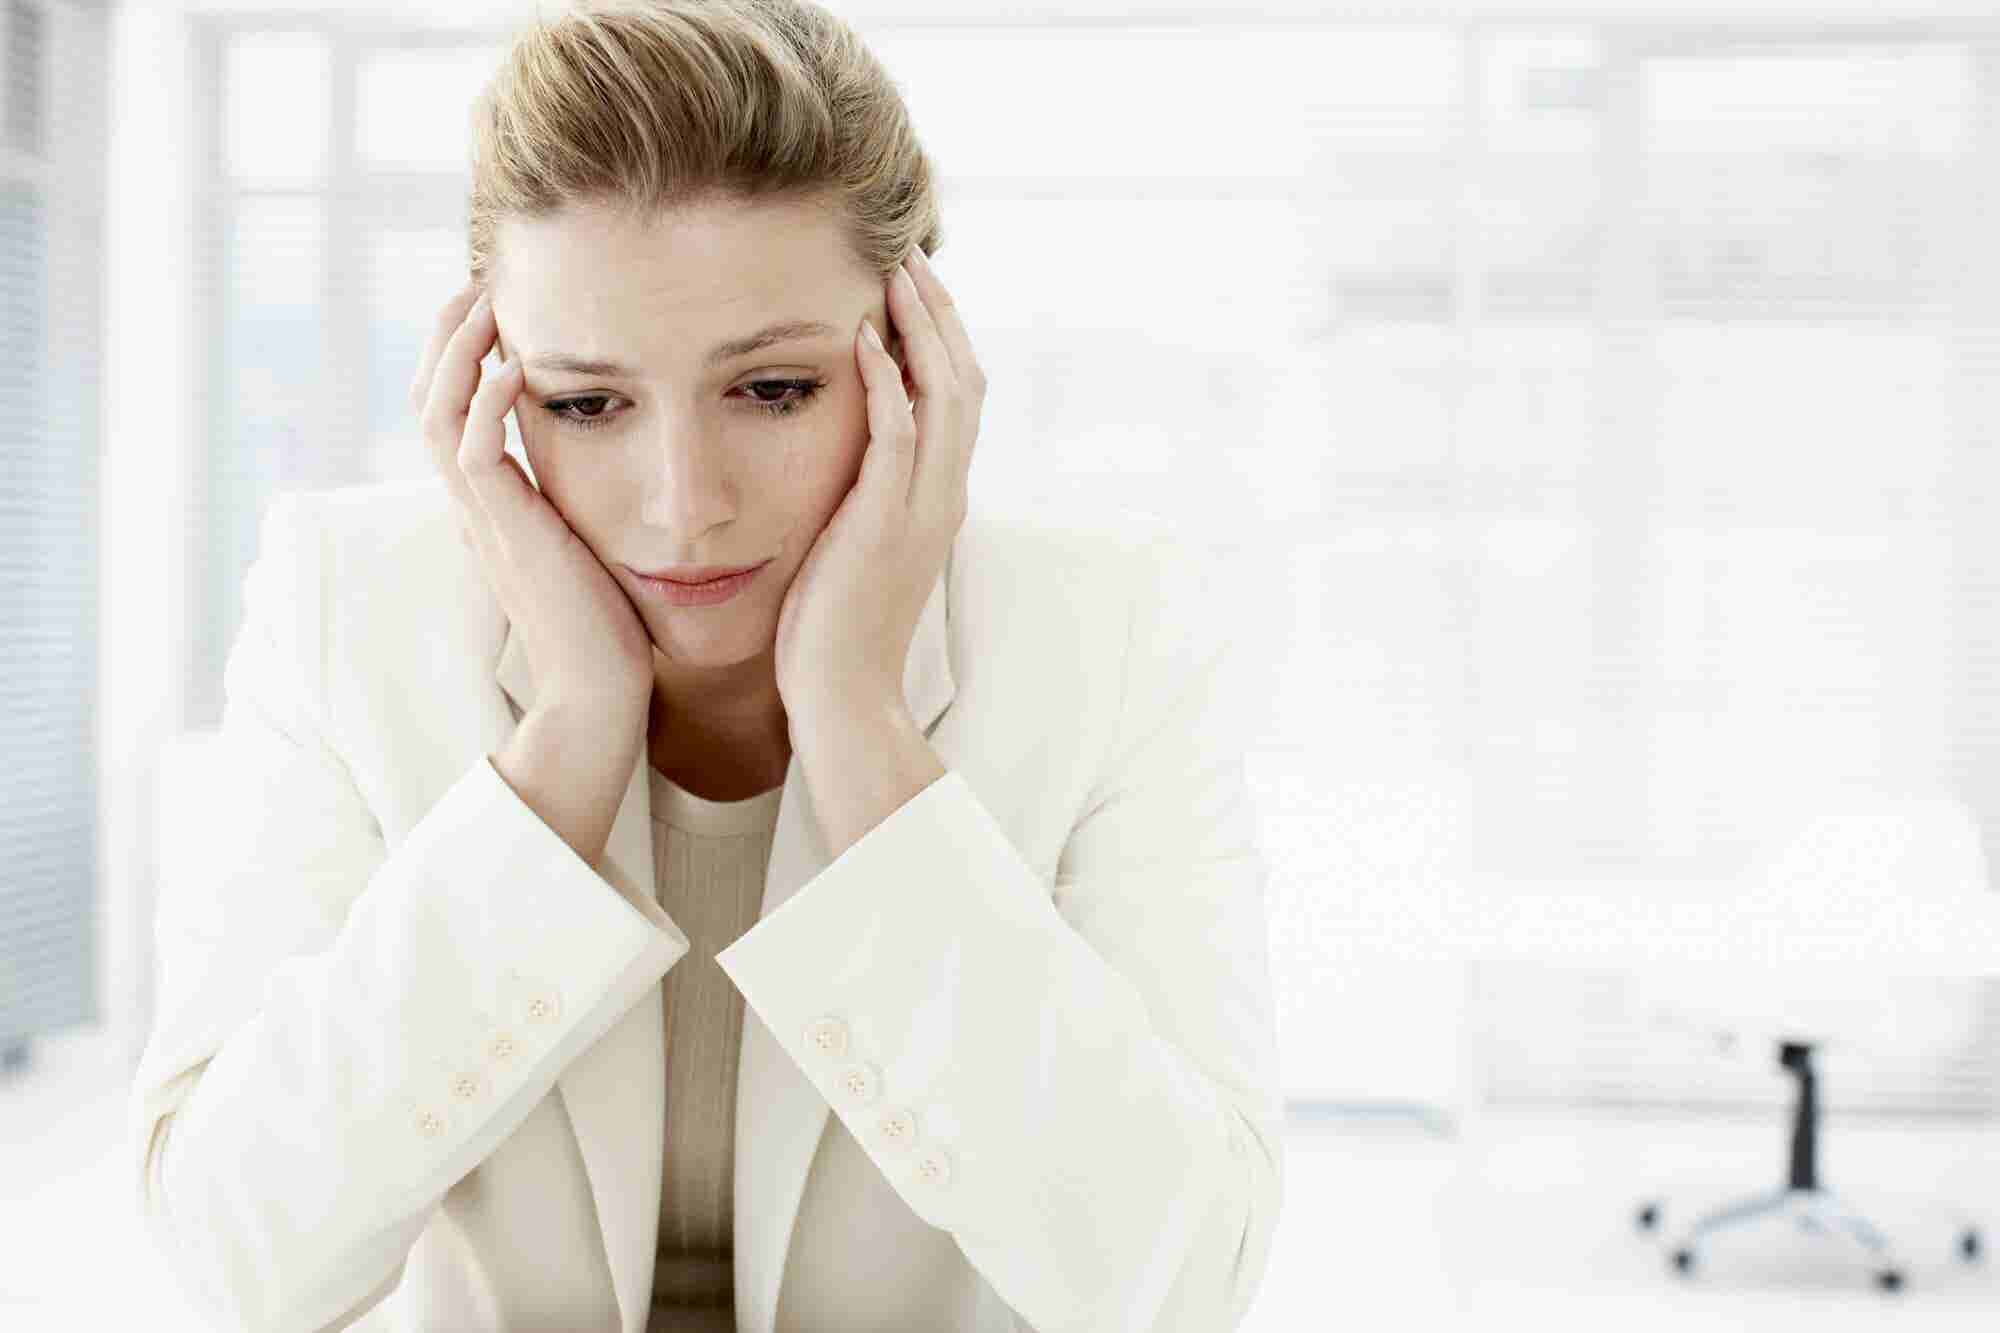 How to Handle a Personal Crisis as a Female CEO